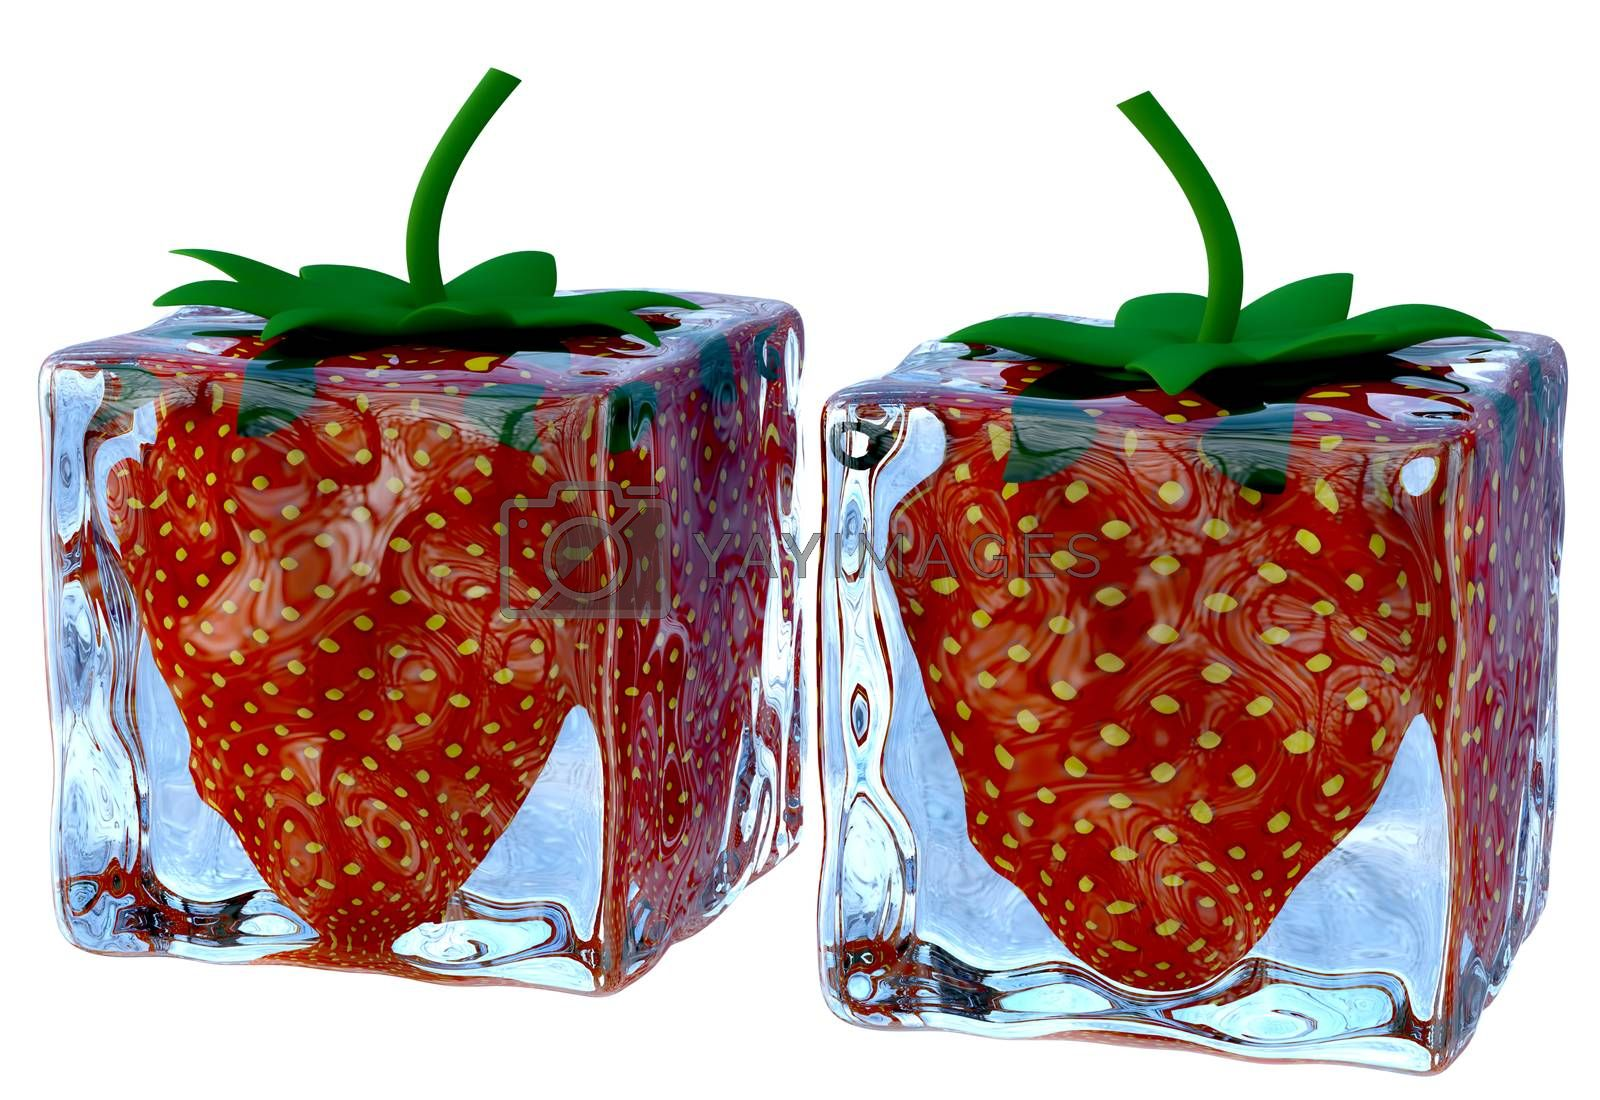 two melting ice cubes with sweet ripe strawberries by merzavka